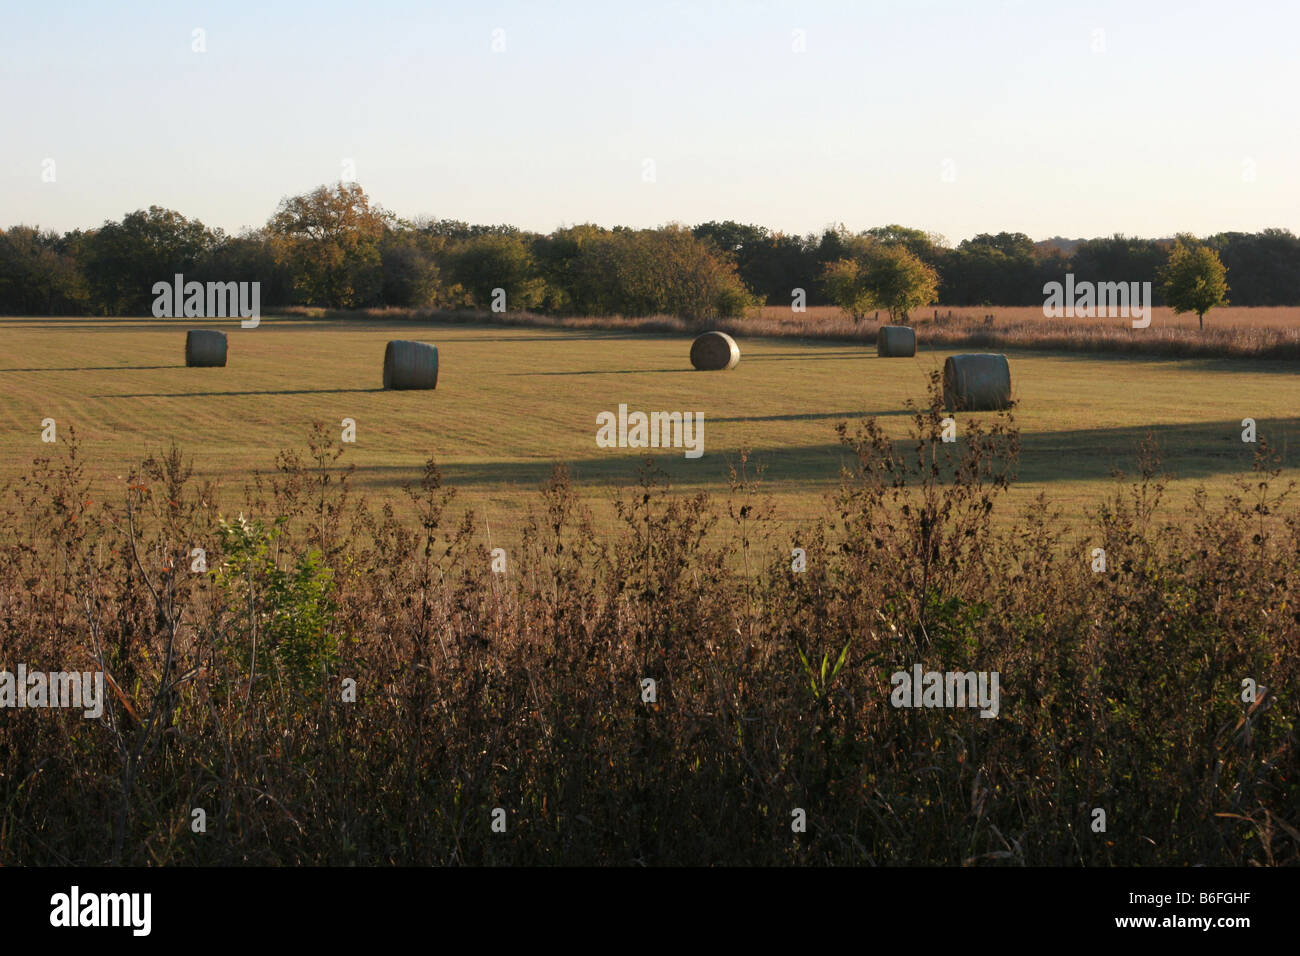 A farm or ranch hayfield in Northcentral Texas - Stock Image